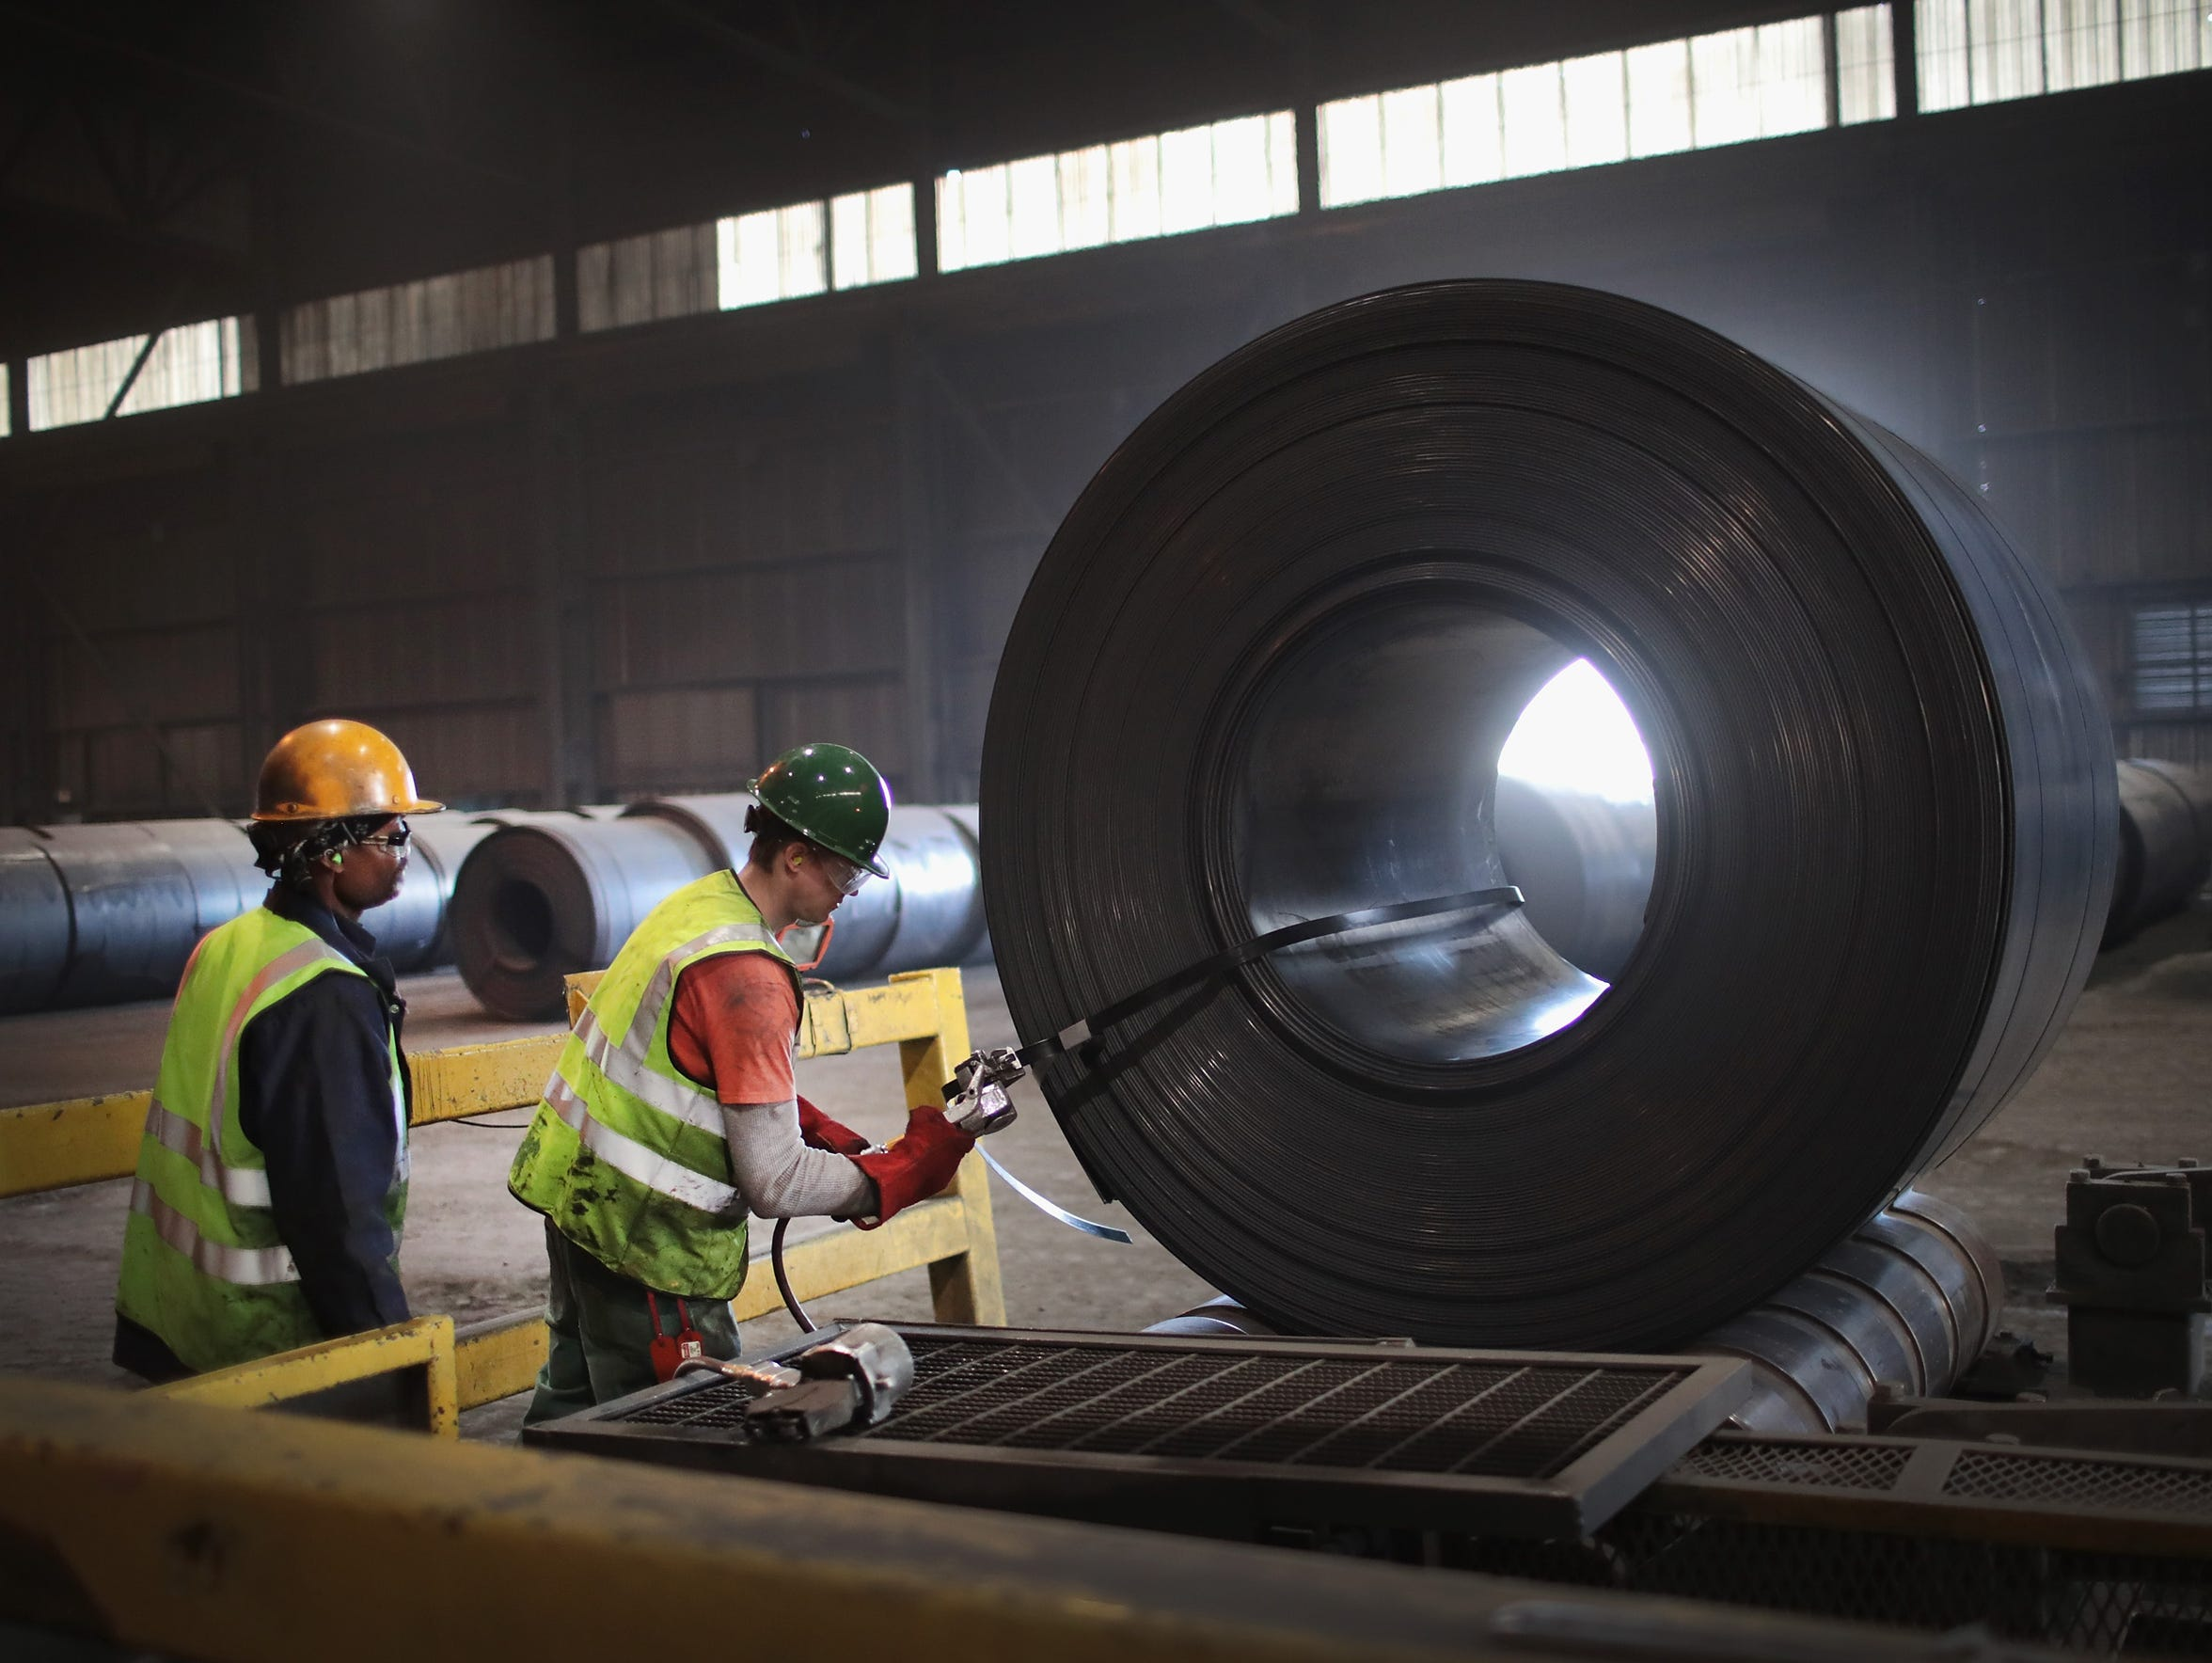 American steel: The 25% tariff on steel has bolstered